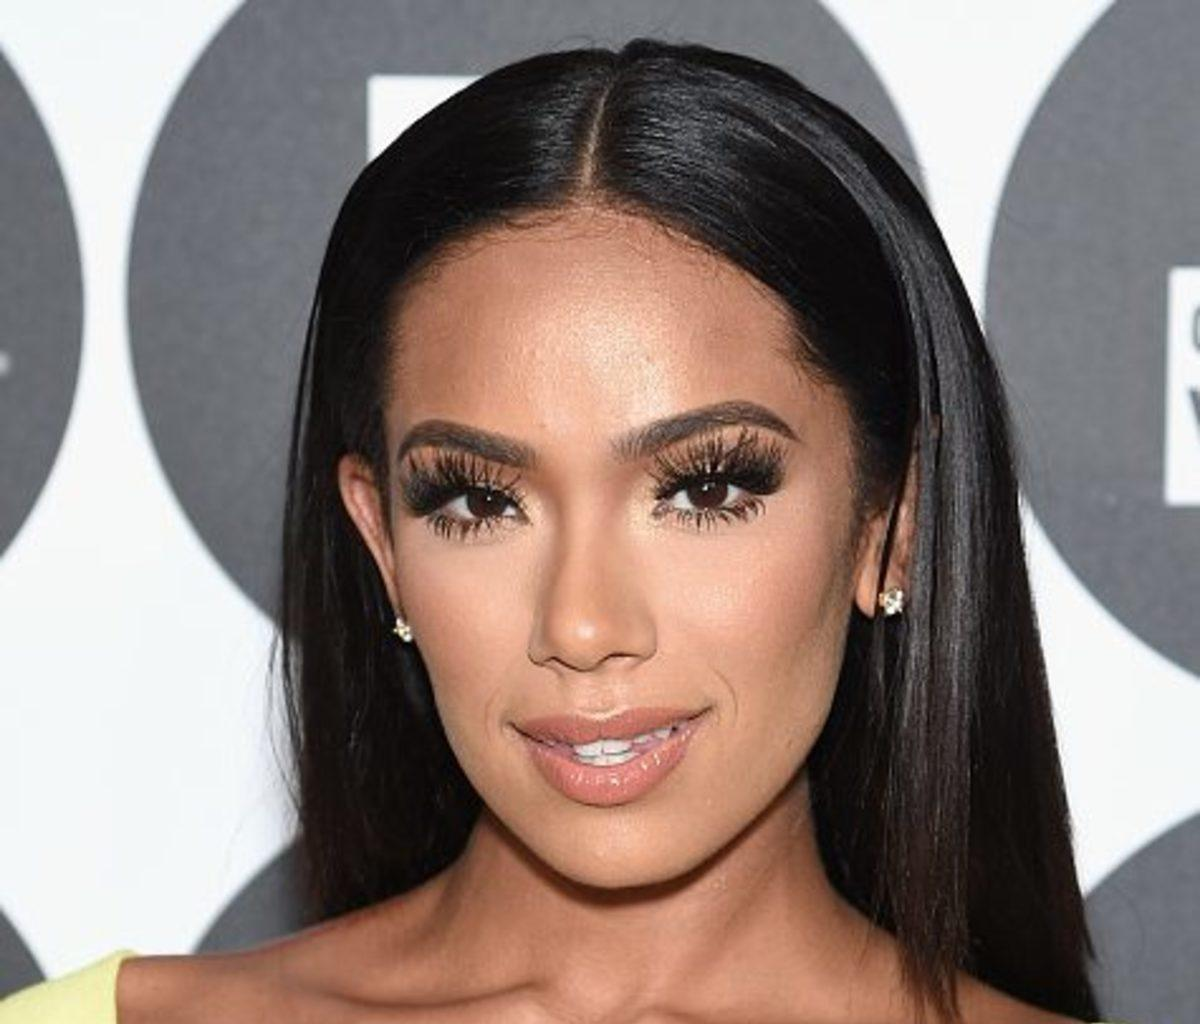 Erica Mena Hits Fans With A Surprise For March 27 - See Her Message